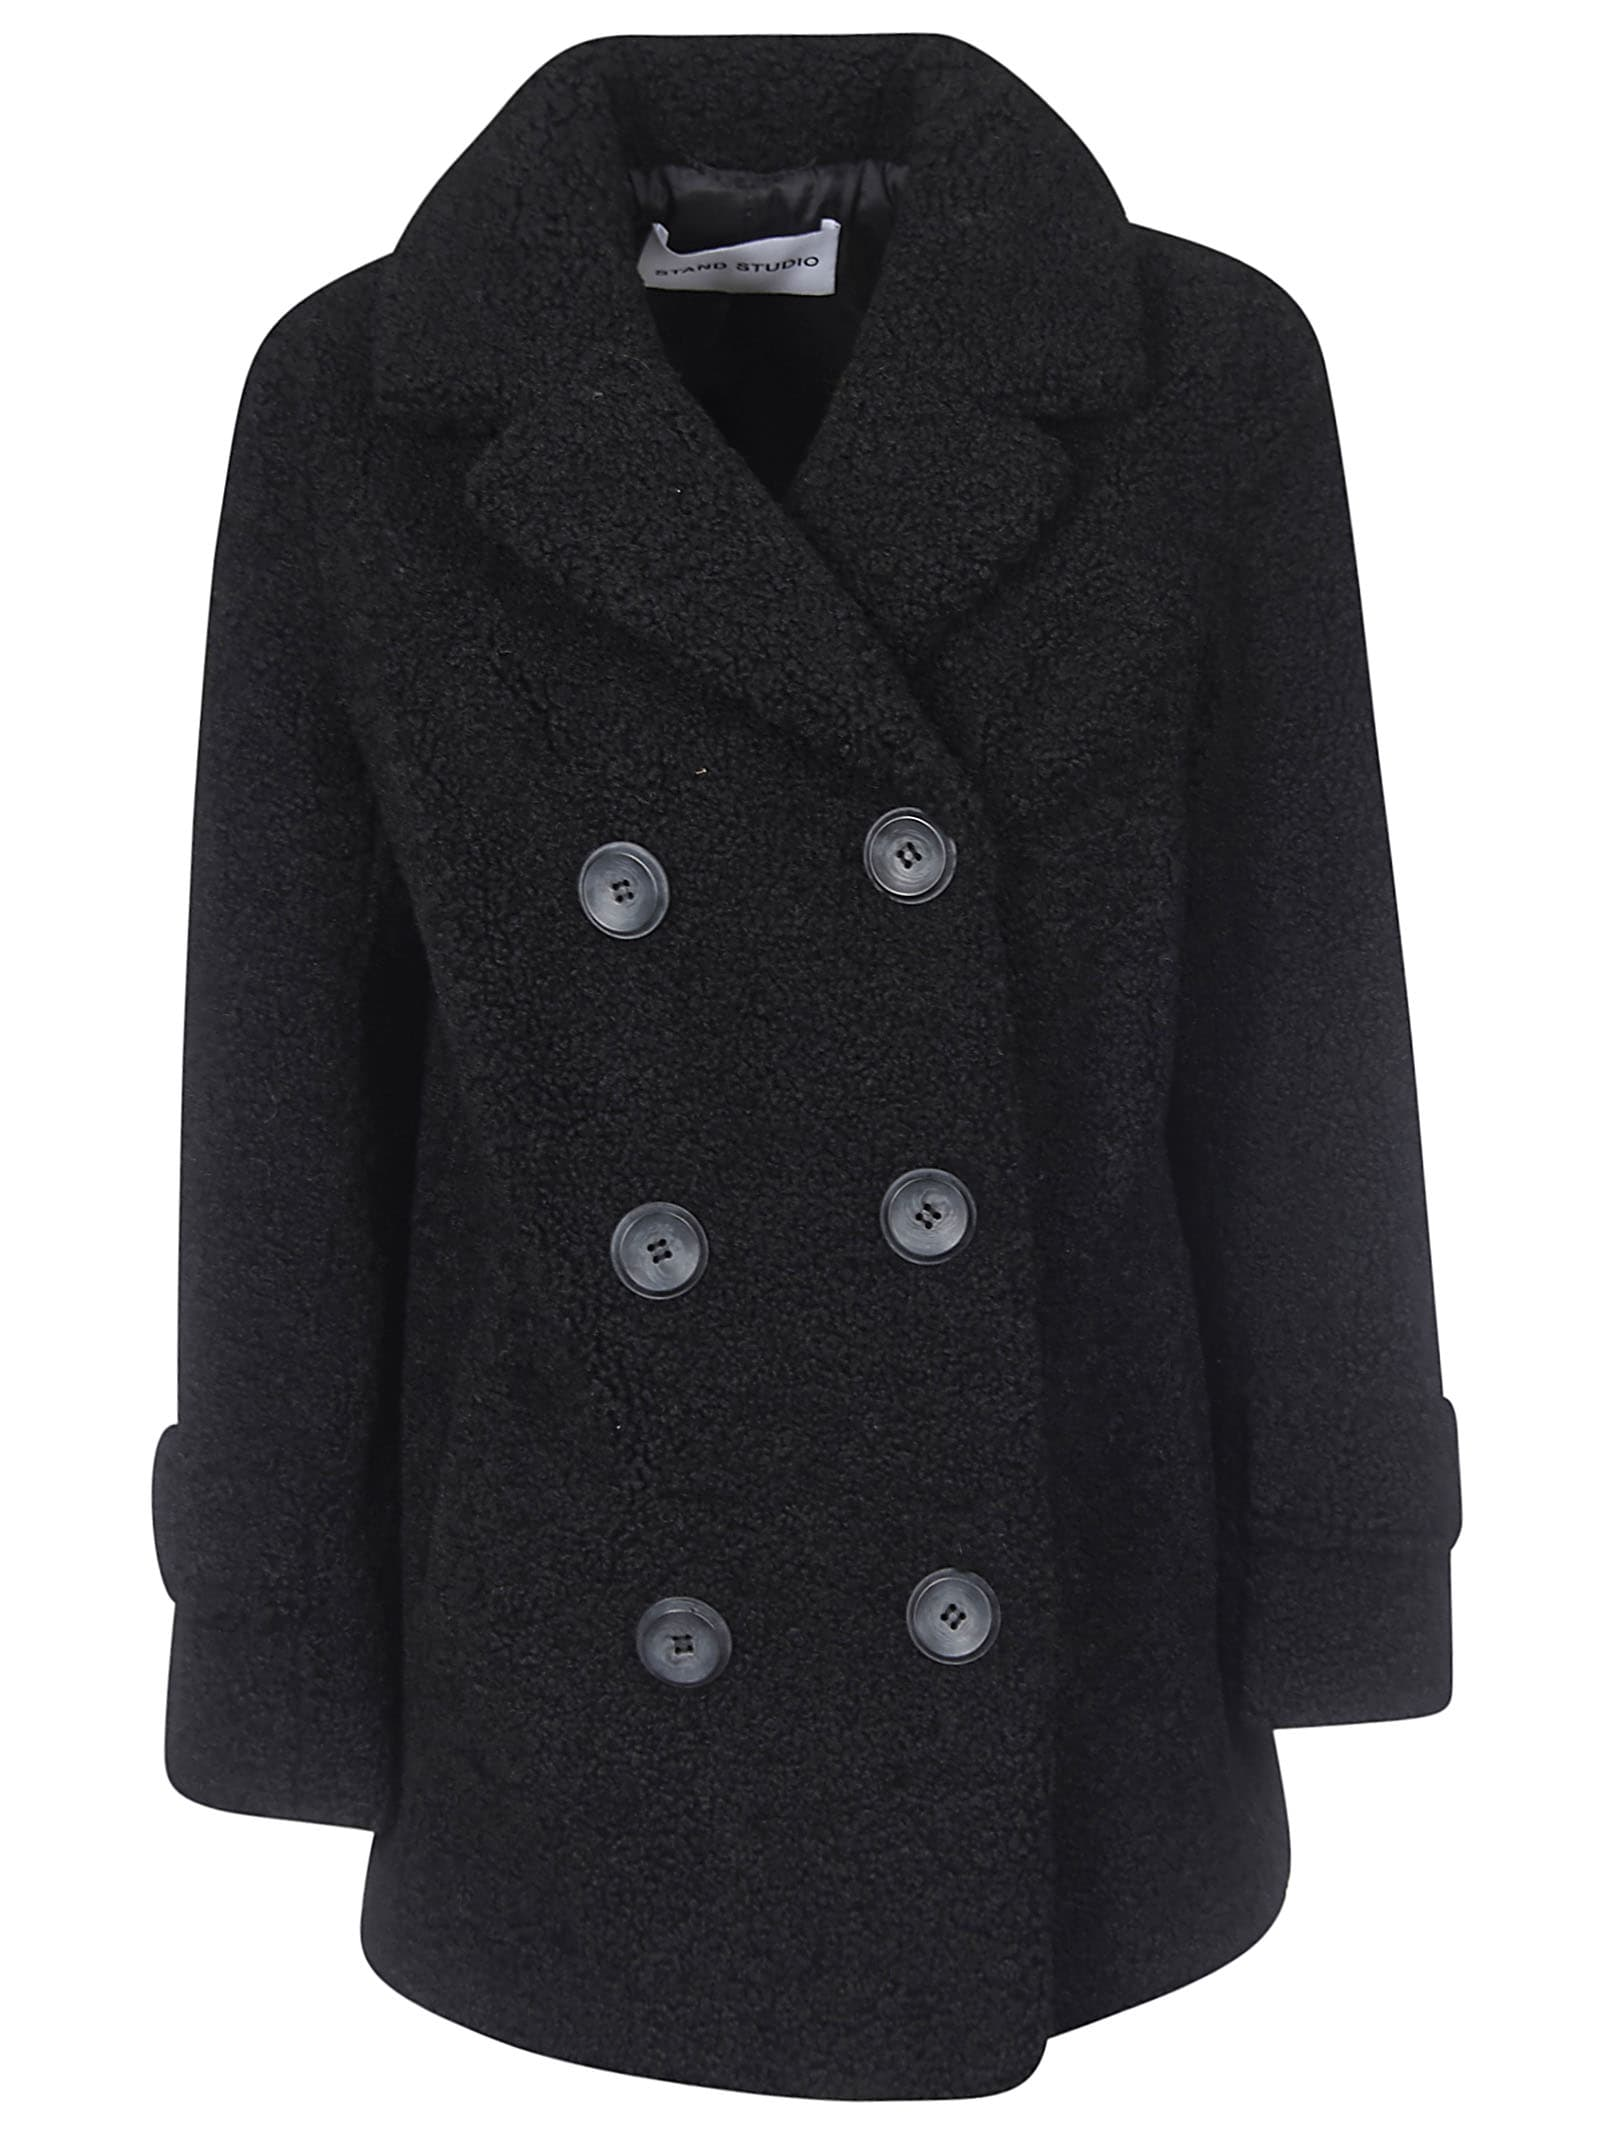 STAND STUDIO Double Breasted Coat